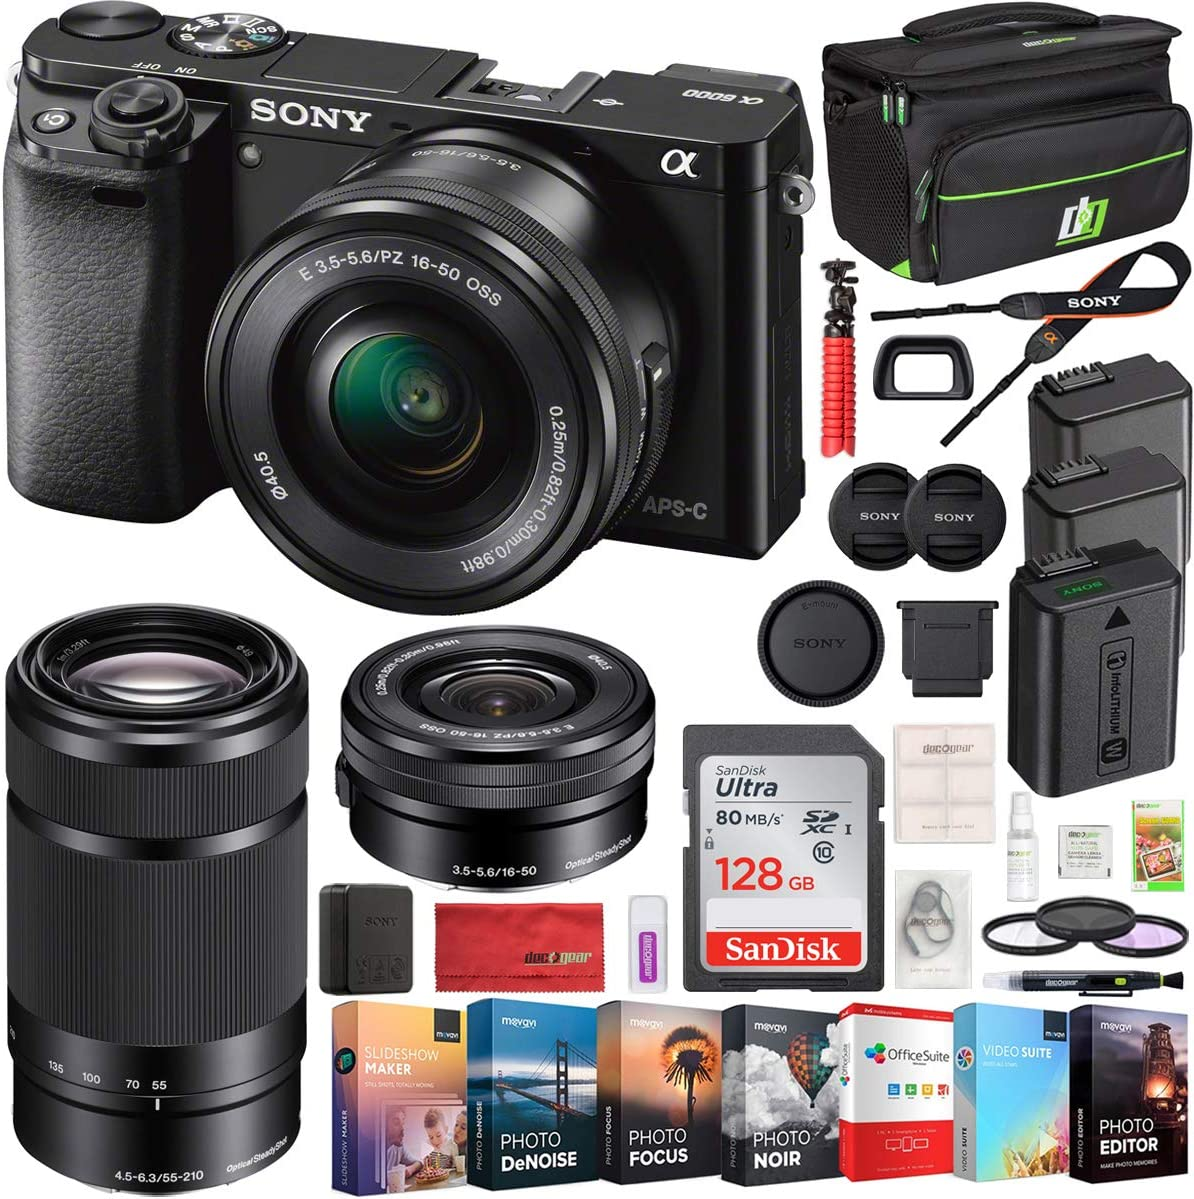 Sony Alpha a6000 Mirrorless Camera with 16-50mm and 55-210mm Power Zoom Lenses Bundle with 128GB Memory Card, 2X Battery, Bag, Professional Editing ...